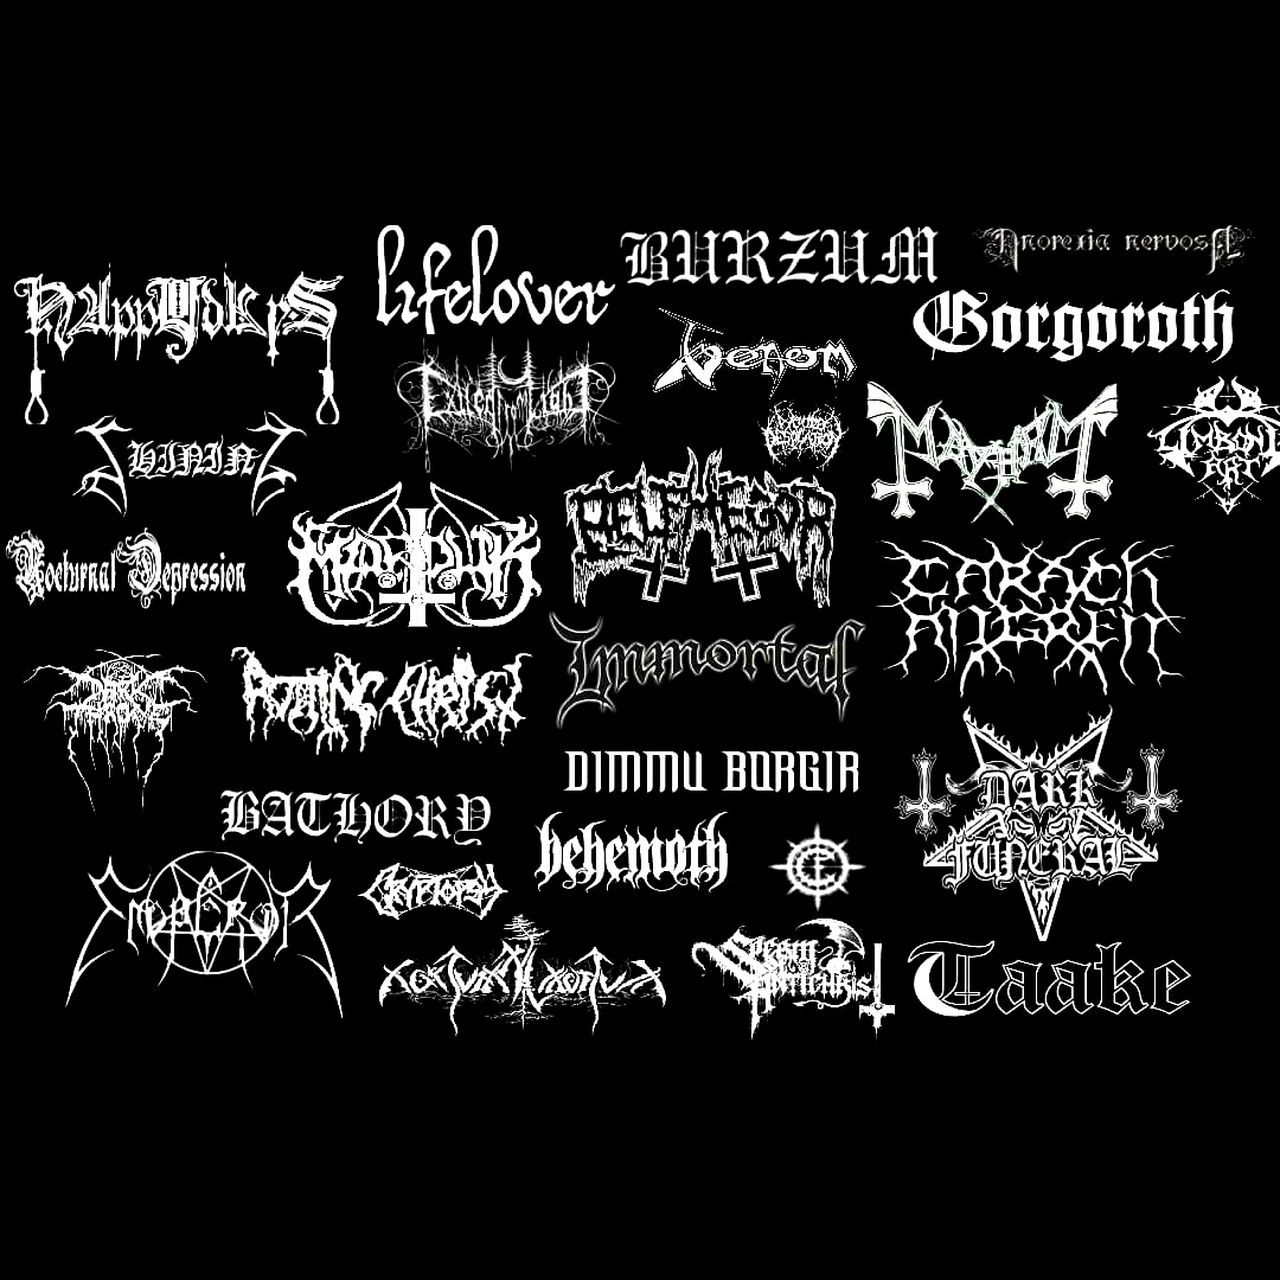 Done in 1 hour. Mayhem  Immortal Sabaton Happydays Dimmuborgir Behemoth Gorgoroth Belphegor Lifelover Darkfuneral Carachangren Venom Marduk Bathory Woodsofdesolation Blackmetal Shining Nocturnal Depression Taake Emperor